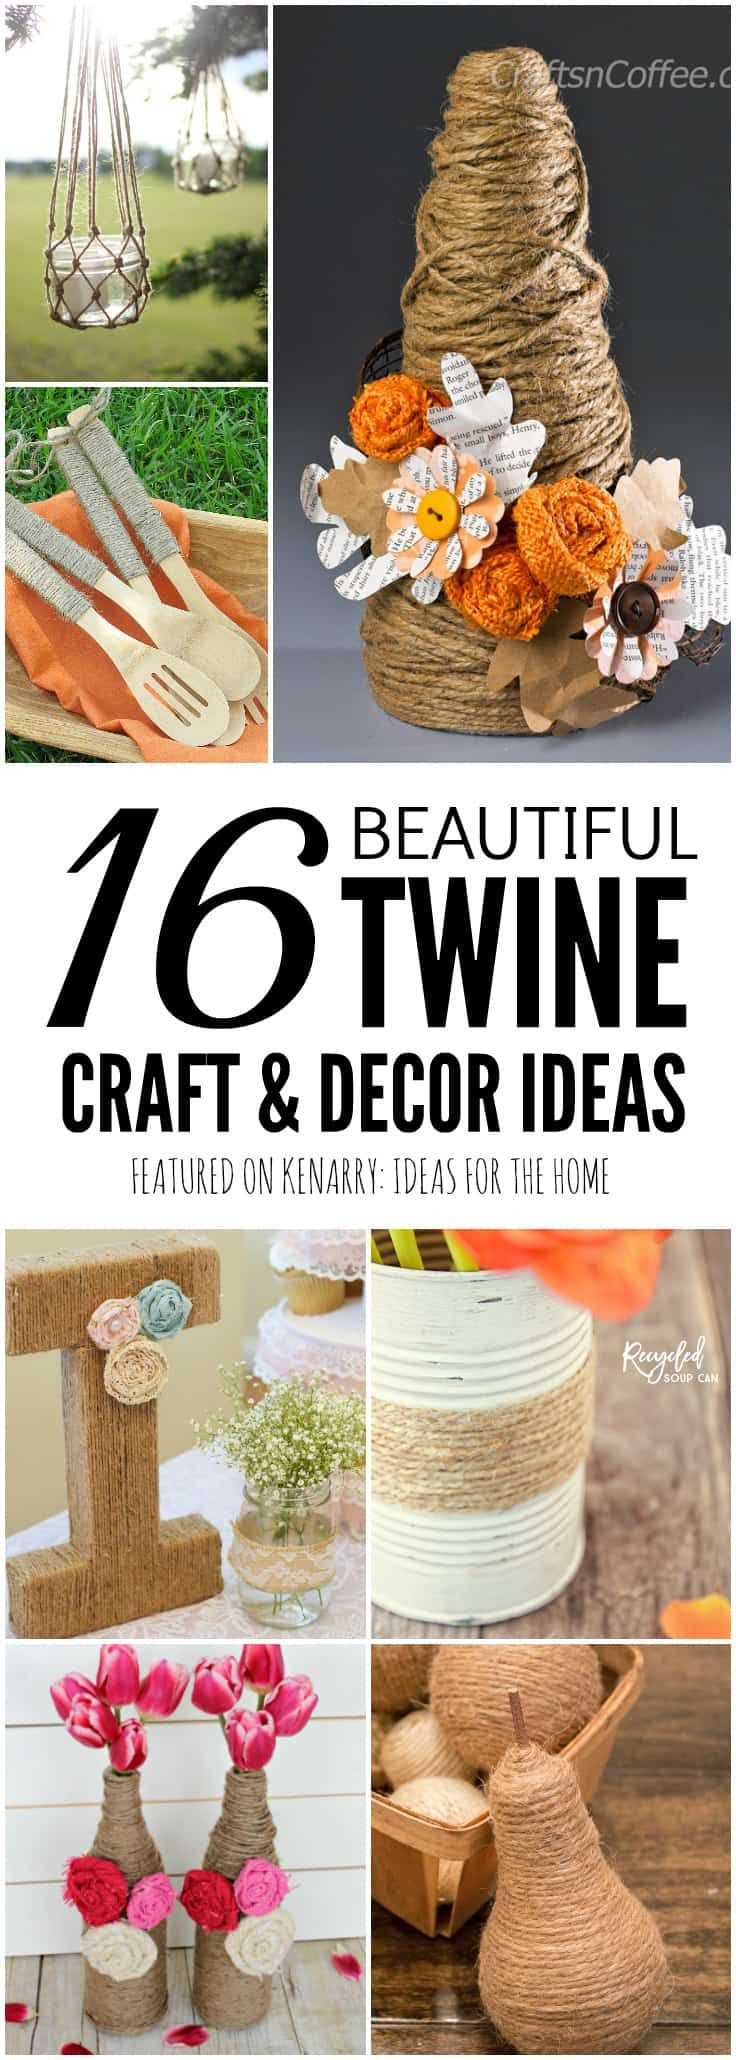 Jute Craft Ideas 16 Diy Projects And Decor Using Burlap Twine